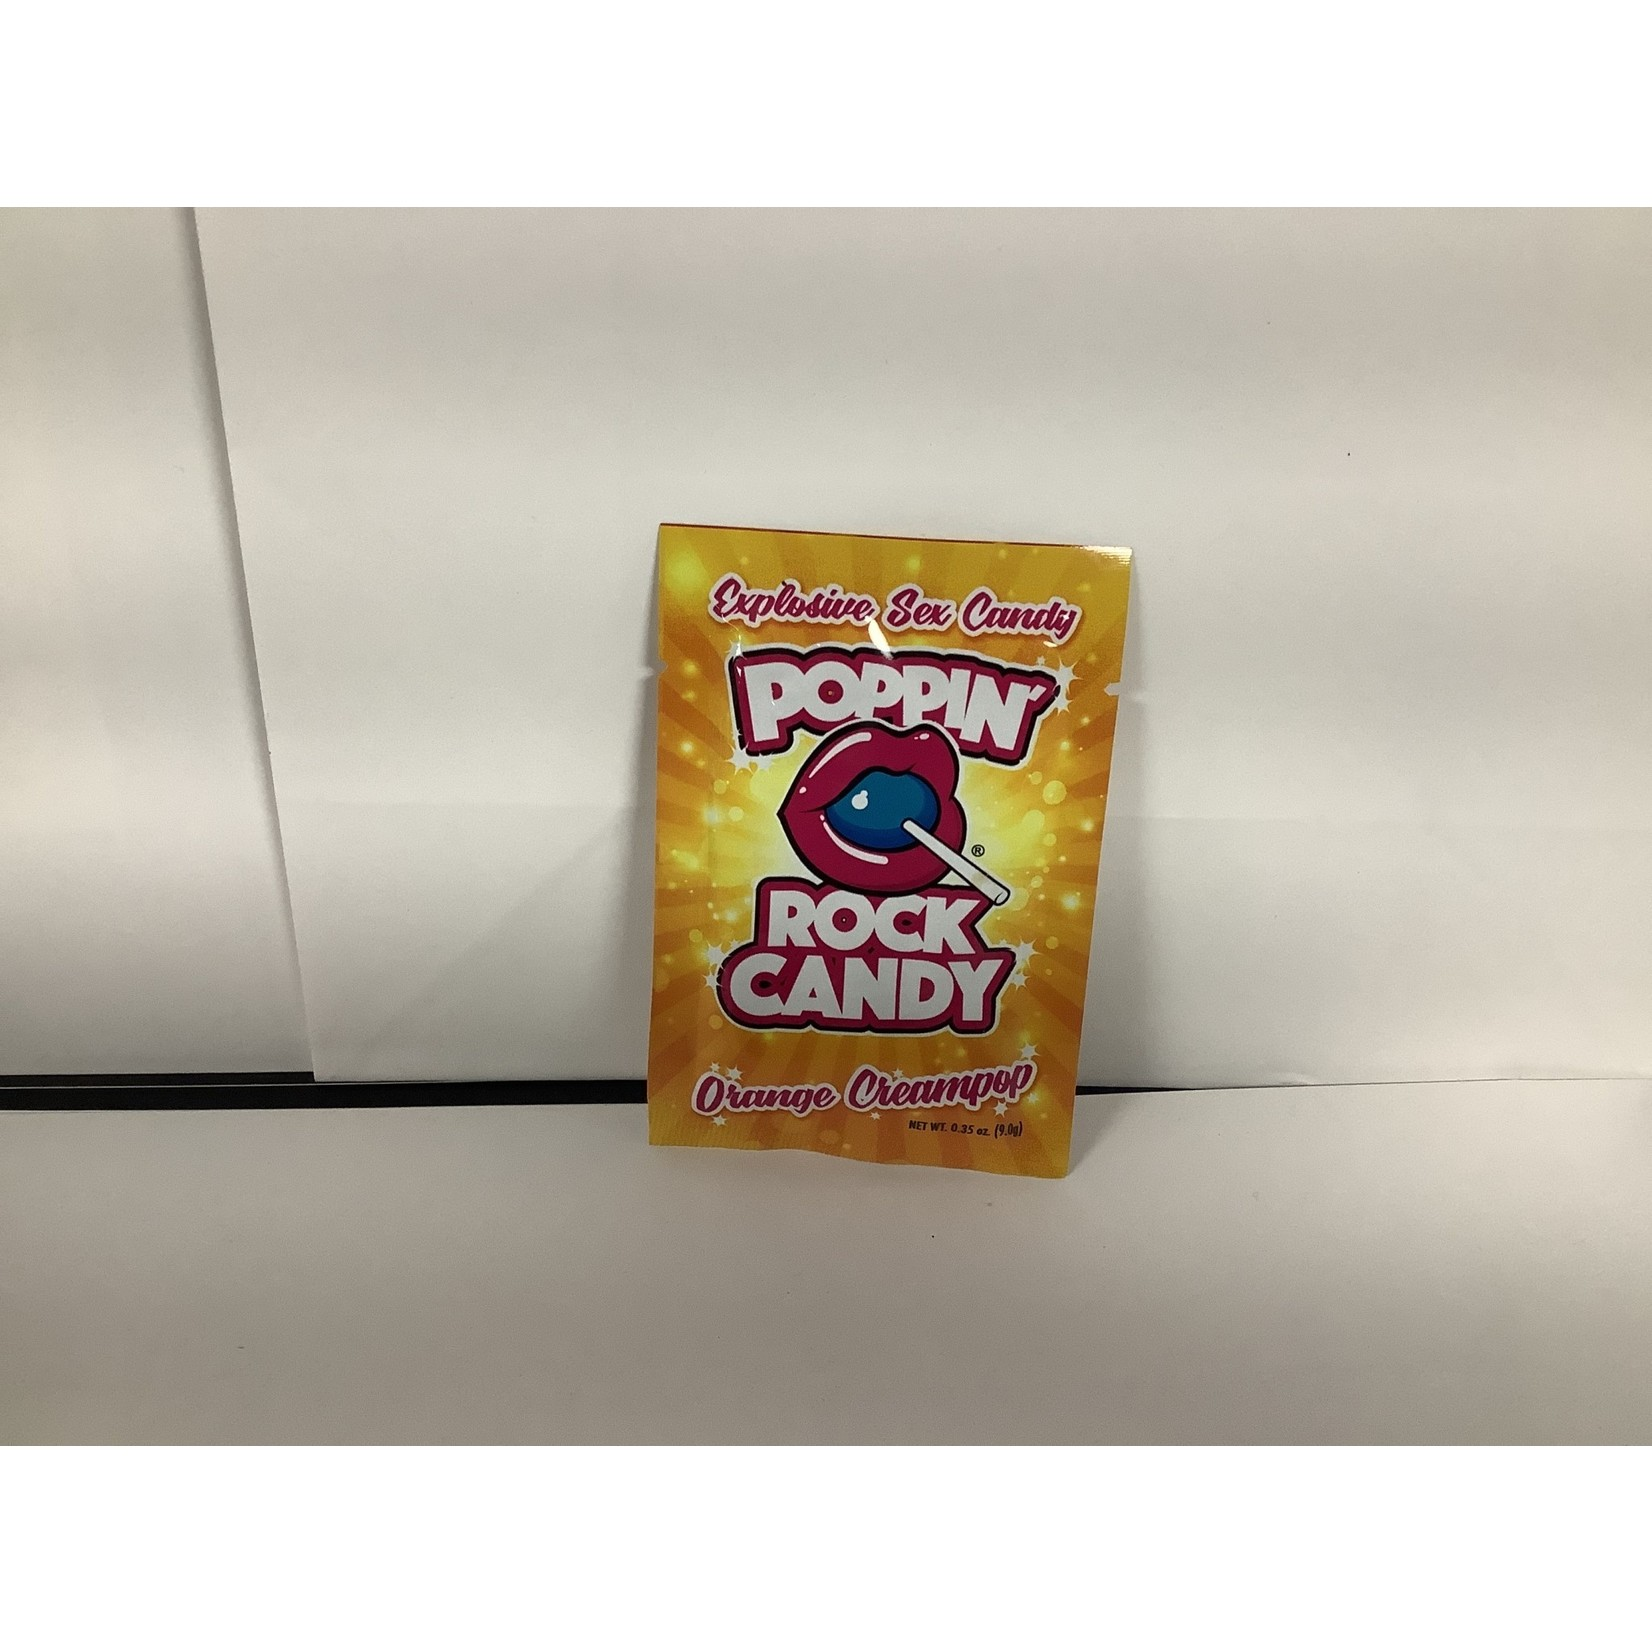 Rock Candy Popping Candy-Orange Creampop